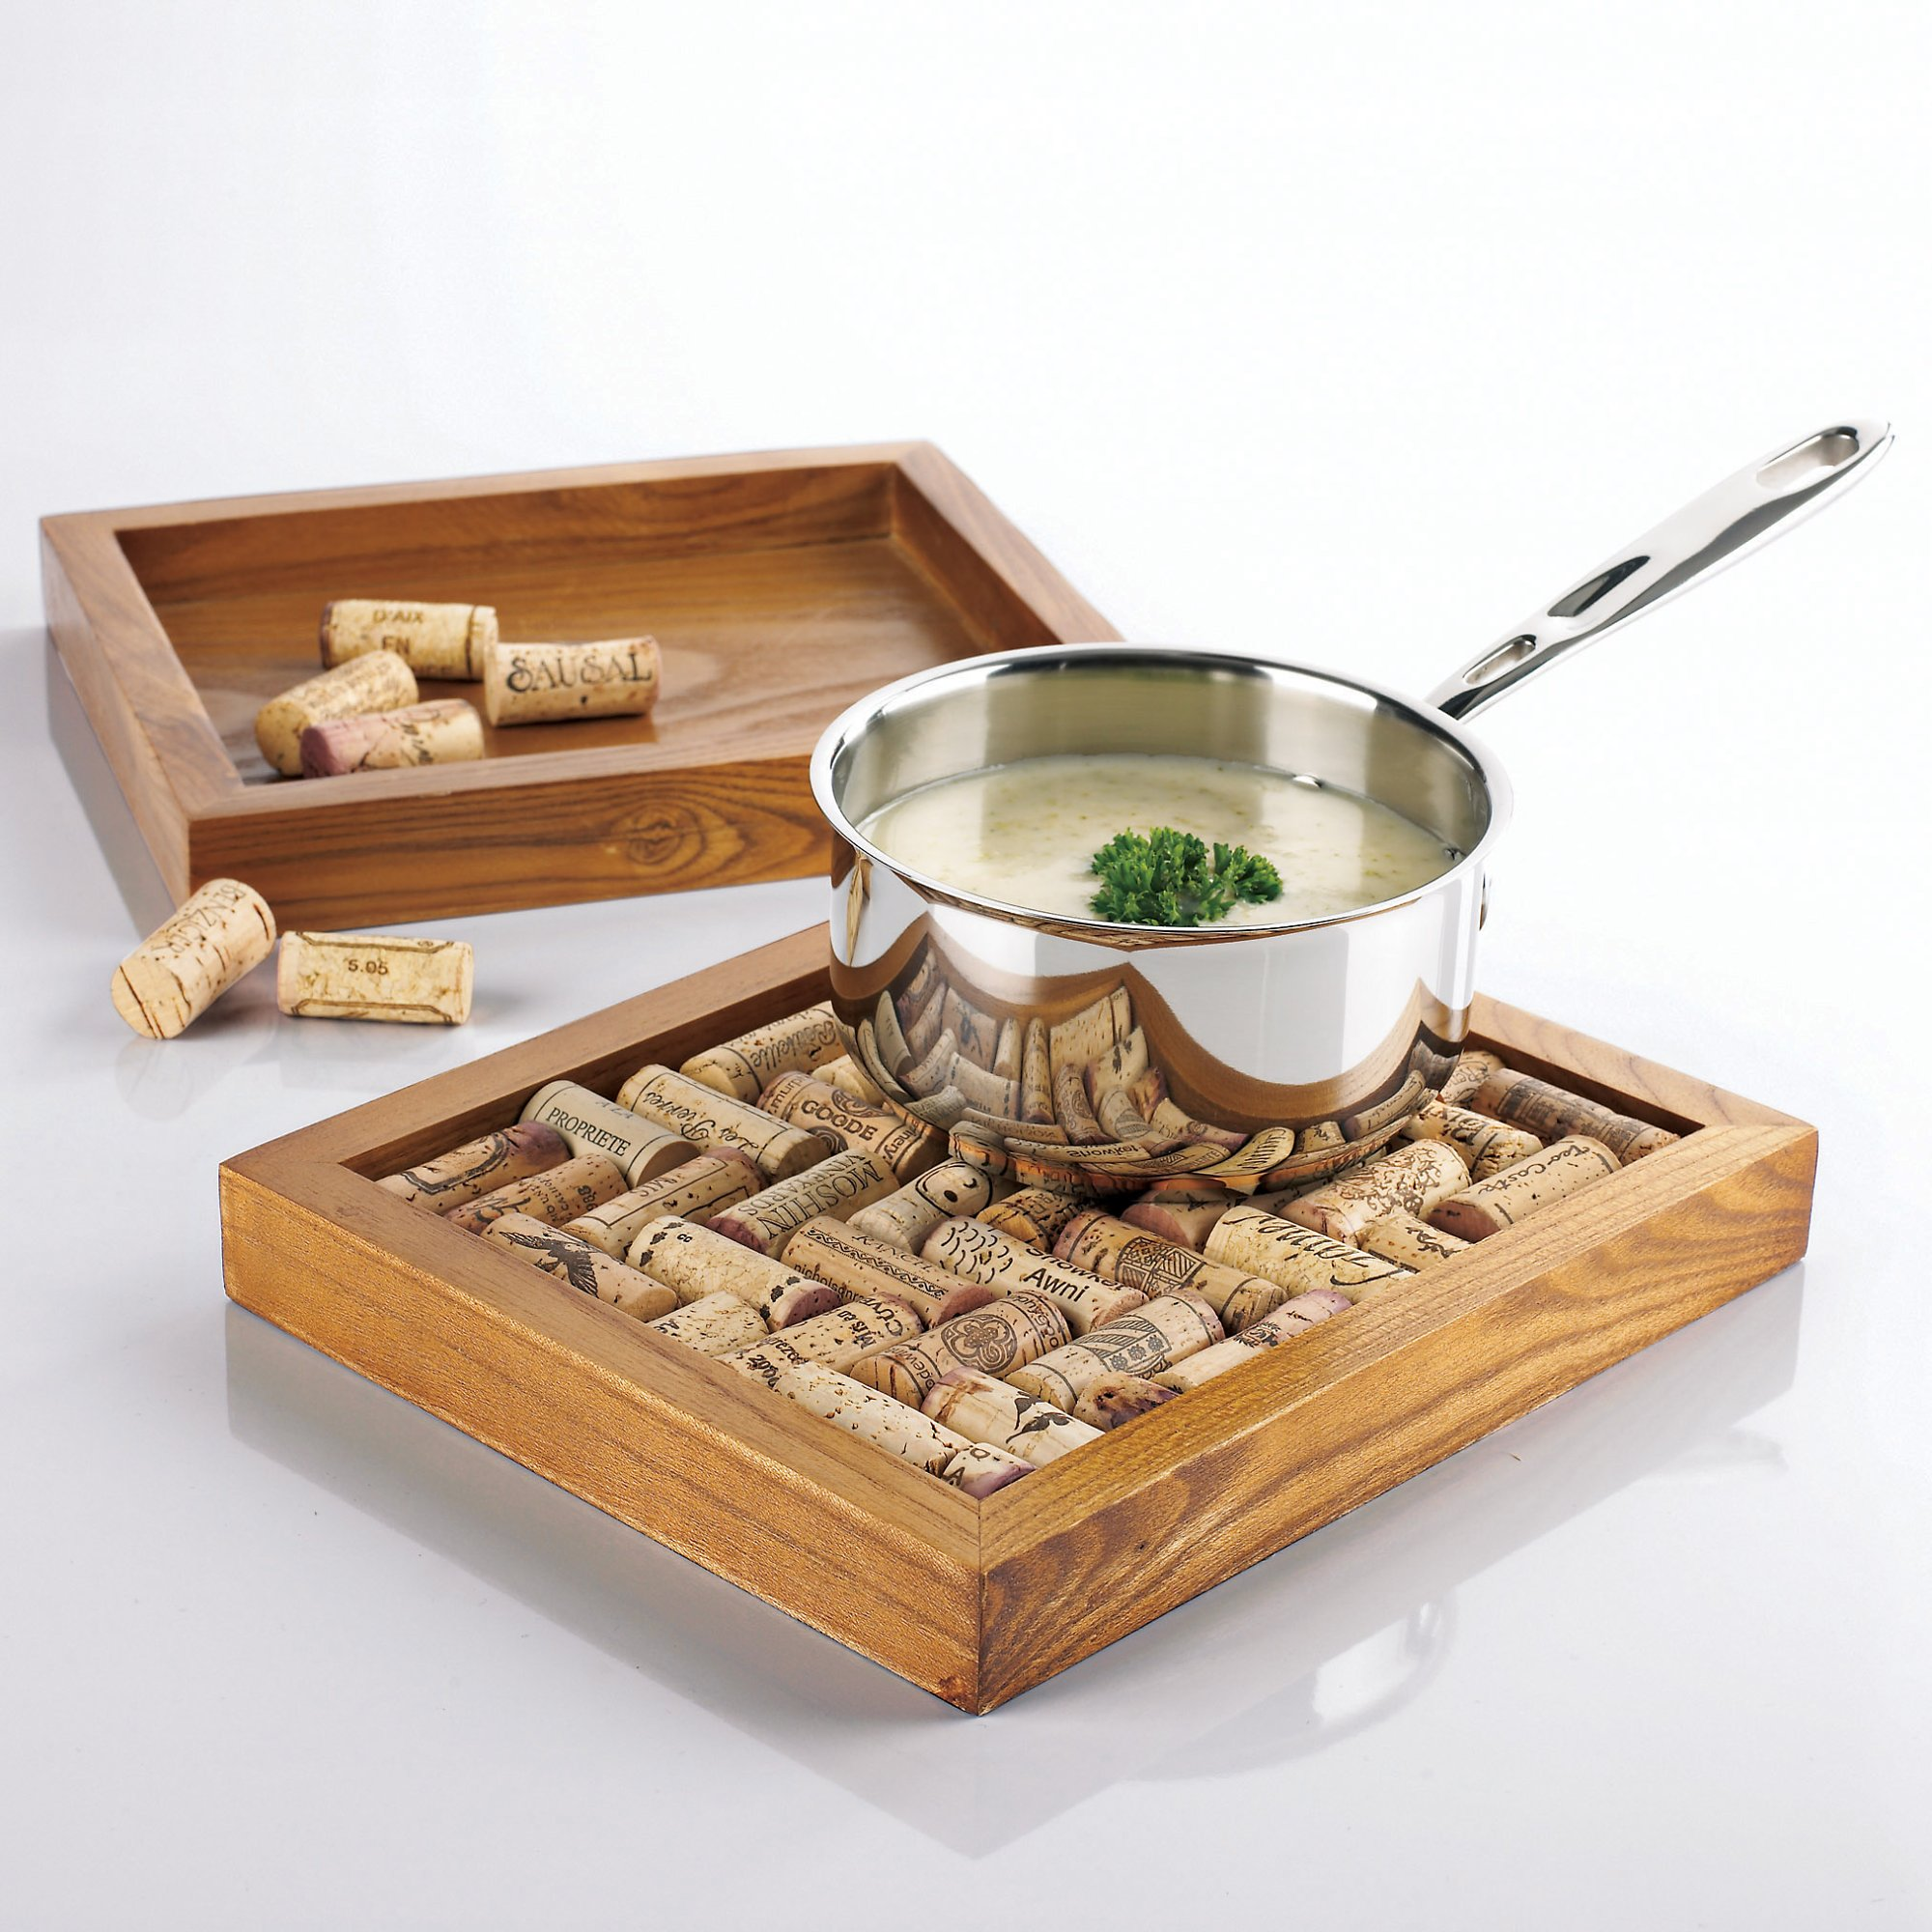 Wine cork trivet kit and a hot pot stand in one